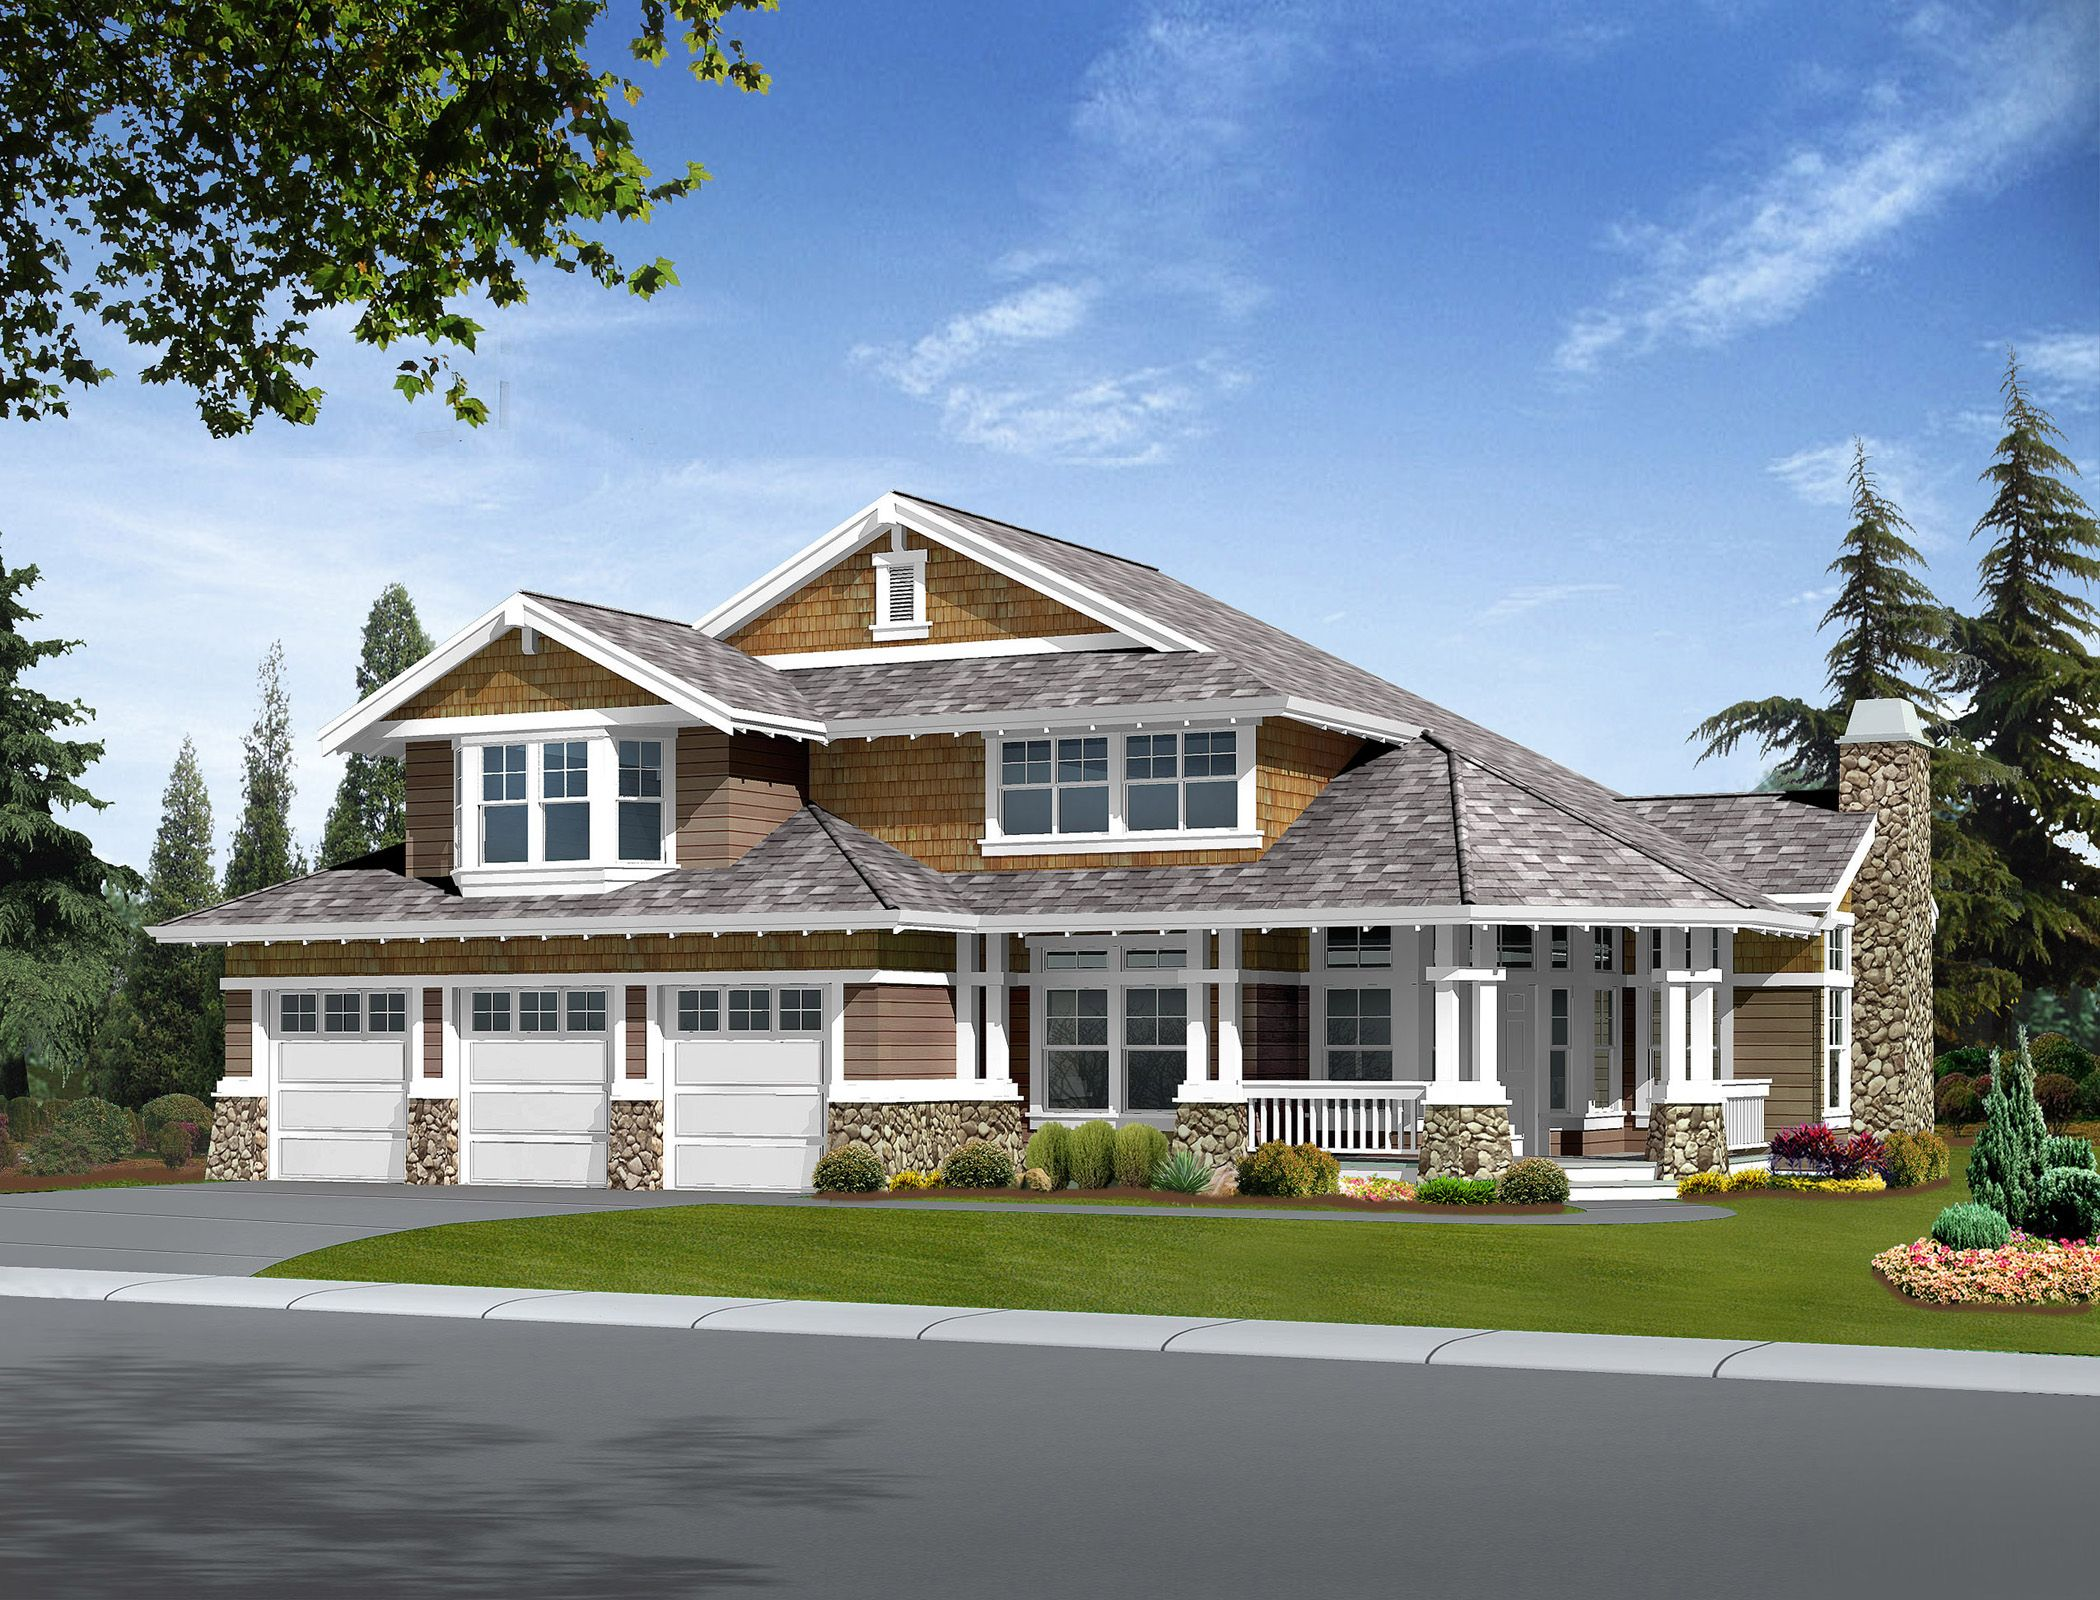 770dd32908f406f7766296e021f6881d Top Result 52 Best Of Craftsman Style Home Plans Photography 2017 Hdj5